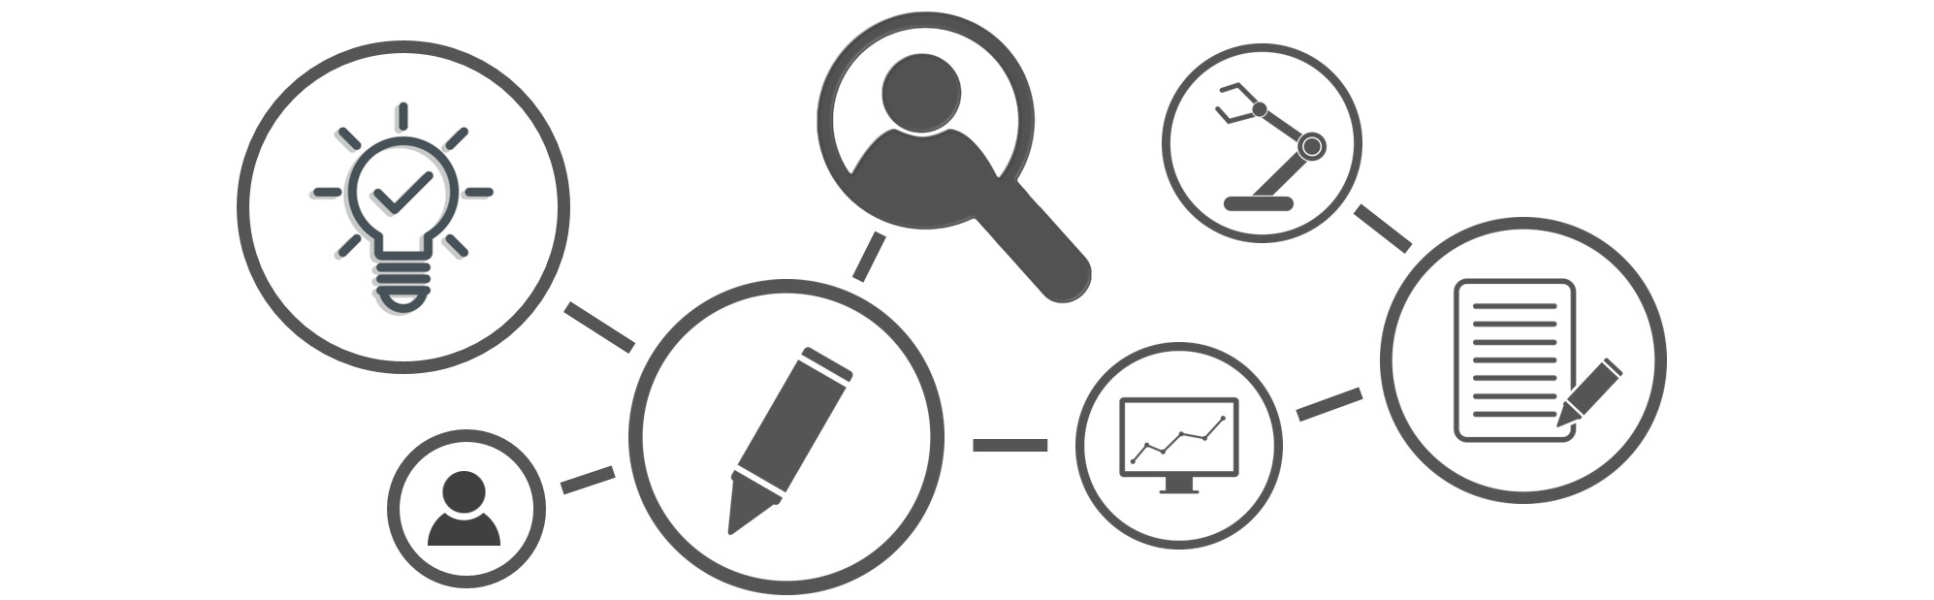 Design and checklist icons linked together